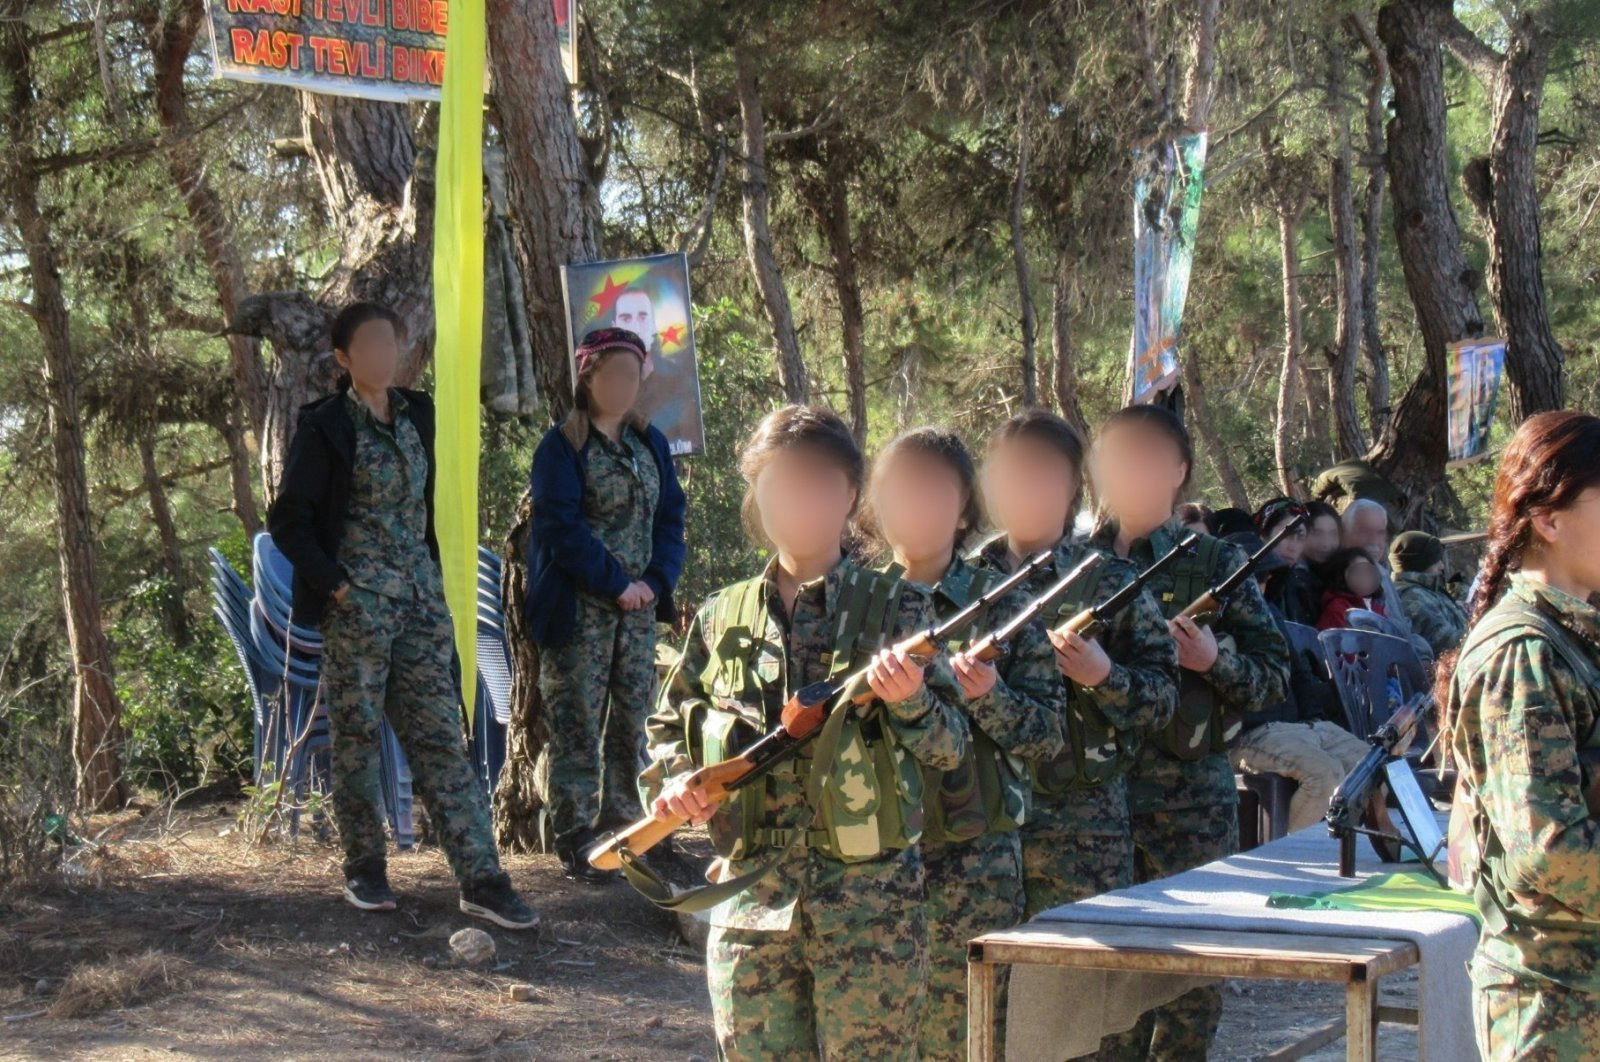 The YPG/PKK's child soldiers receiving training at an unknown location, Aug. 3, 2018. (AA File Photo)